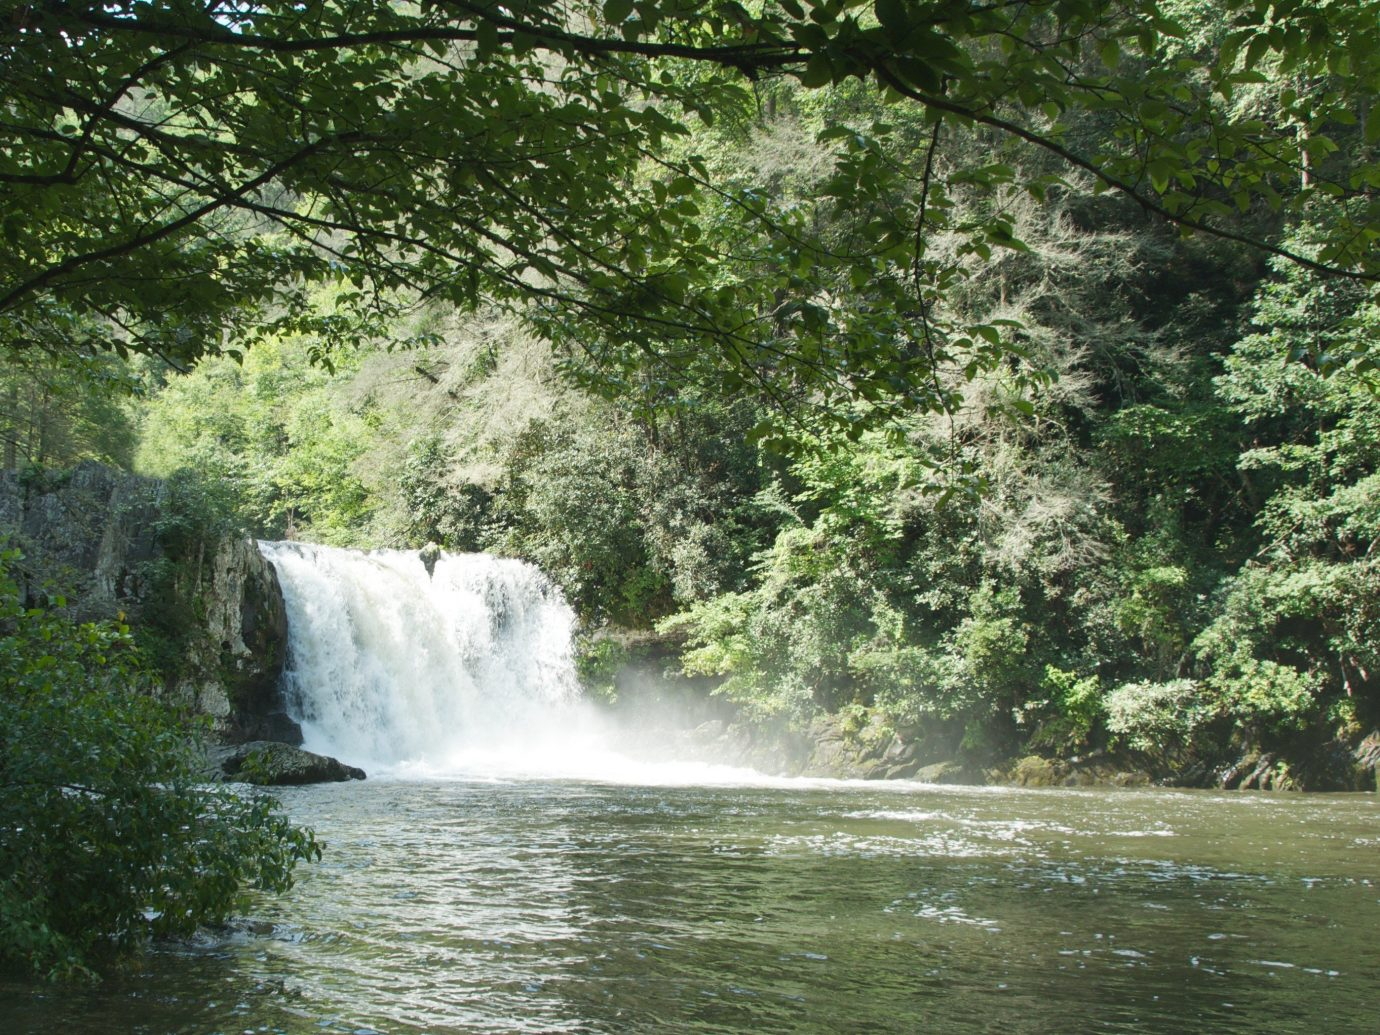 Family Travel National Parks Trip Ideas tree outdoor water Nature body of water Waterfall River watercourse water feature stream Forest rapid Jungle rainforest